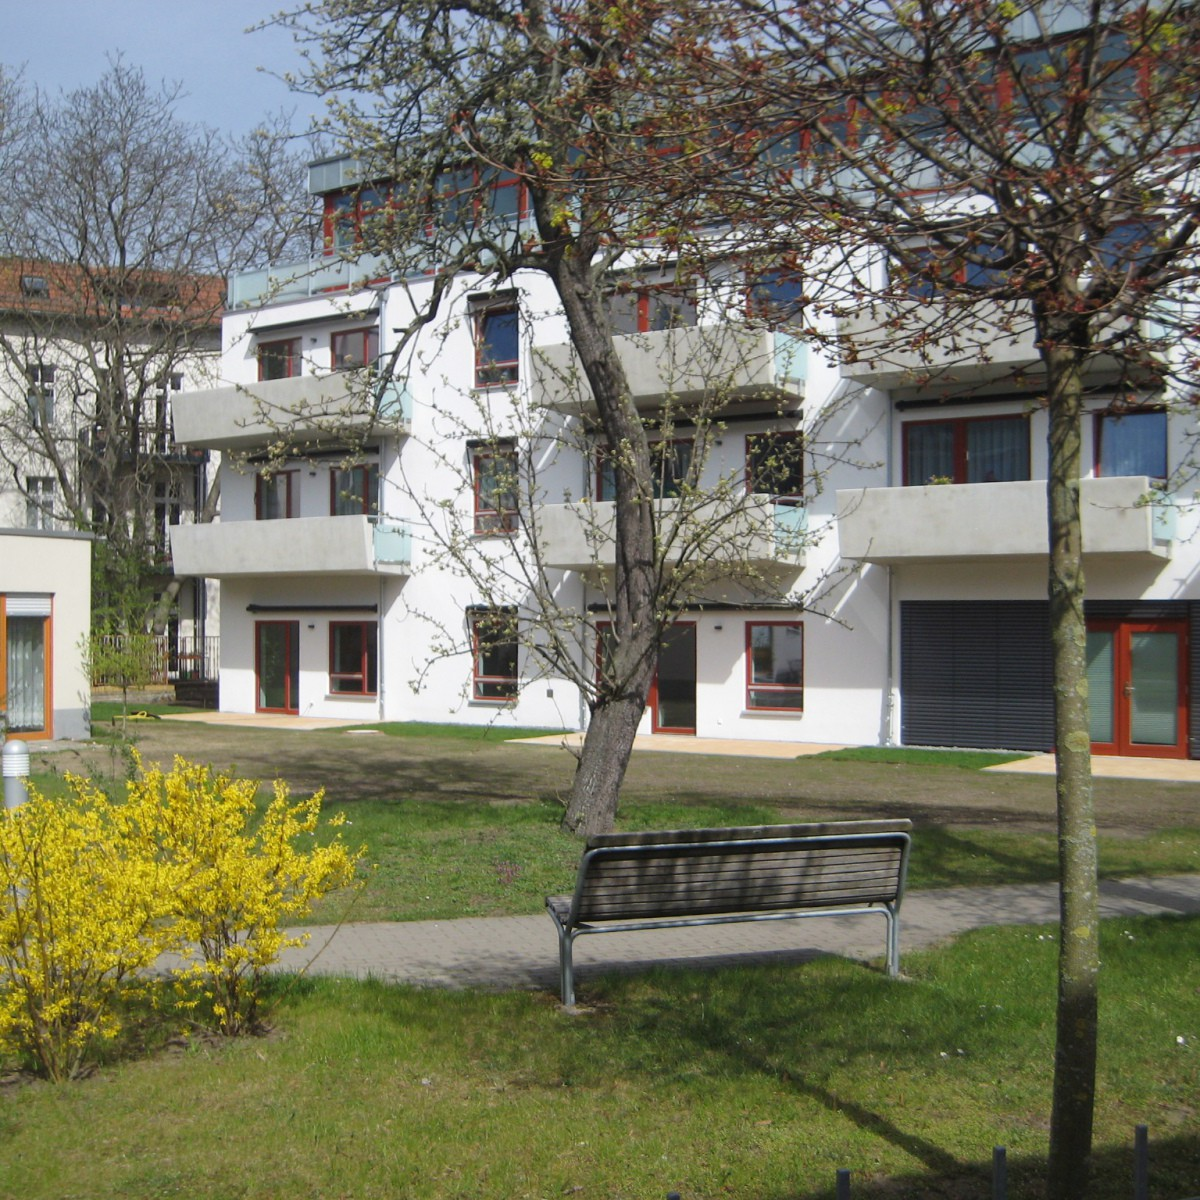 Seniorenzentrum 6, Berlin-Pankow